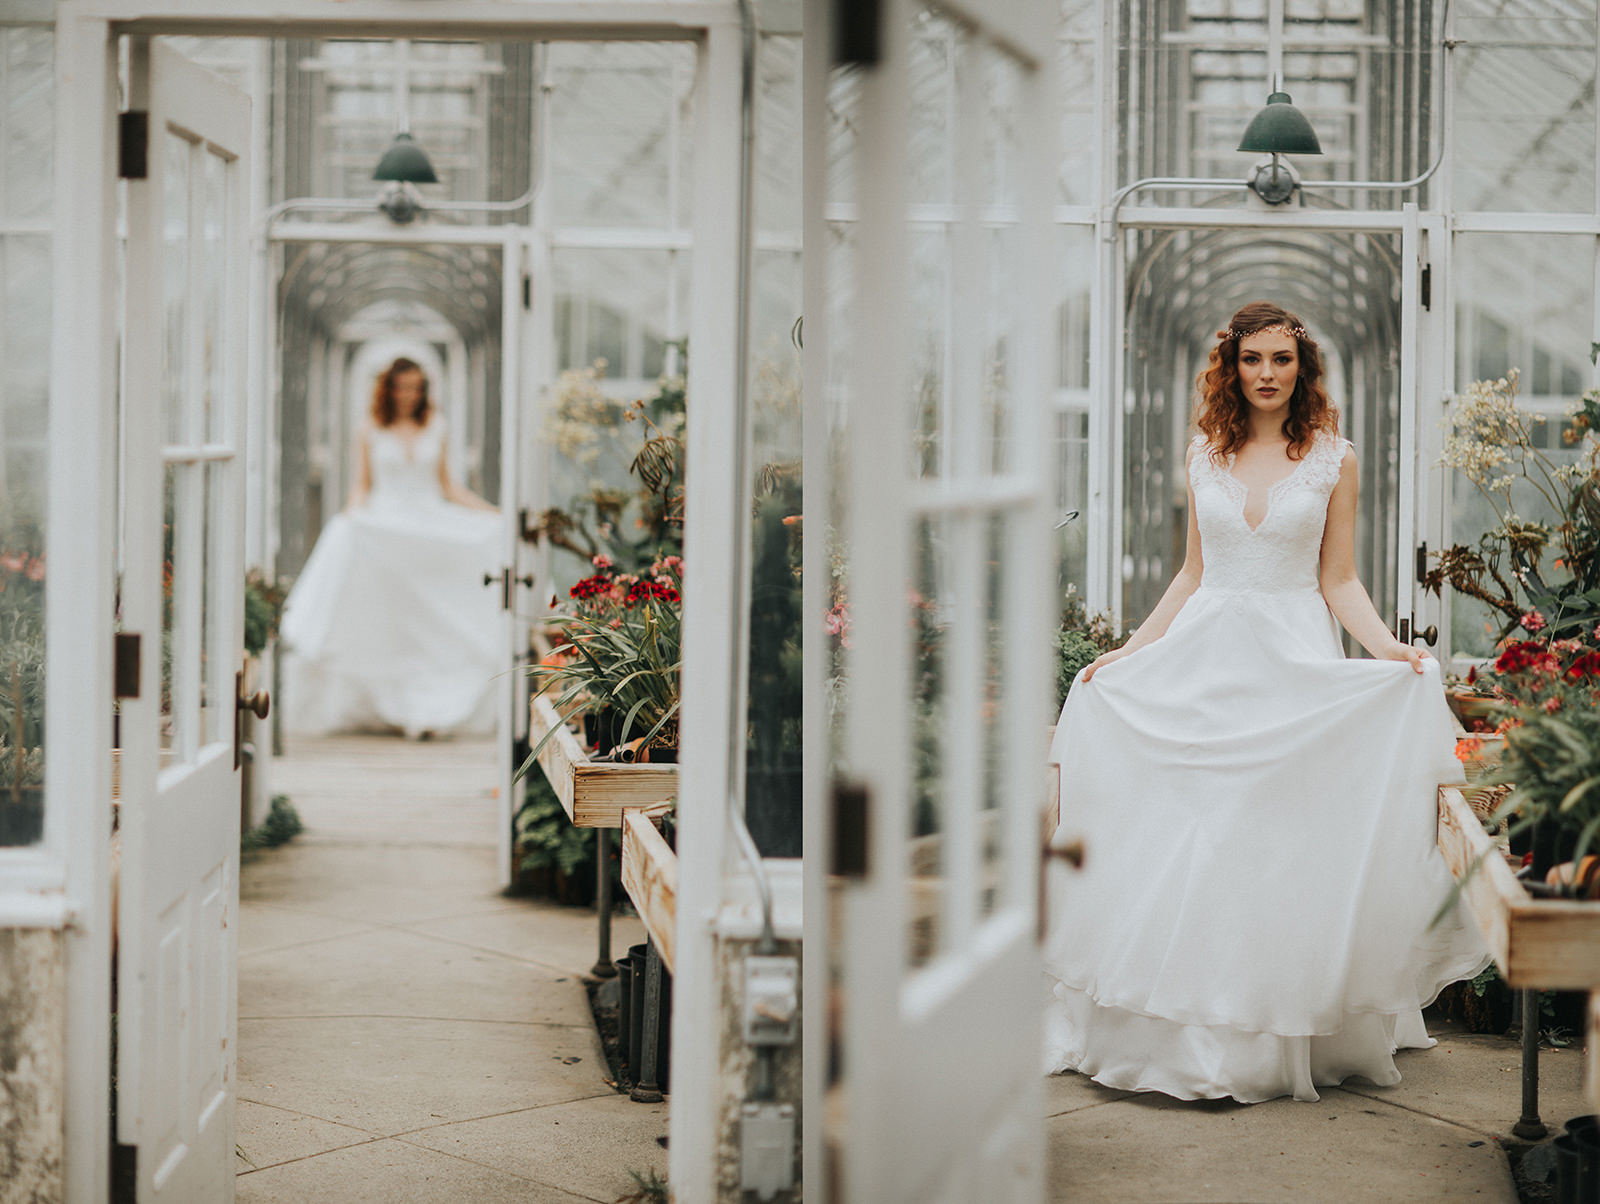 Myrtle and Moss Photography Hatley Castle Greenhouse Styled Bridal Session by Victoria's best in the Wedding Industry. Briellen Lockhart, Tres Chic Bridal, Lis Simon, Beauty & Style by Erin Bradley, Trend Decor, Ecstatic Lash and Brows.